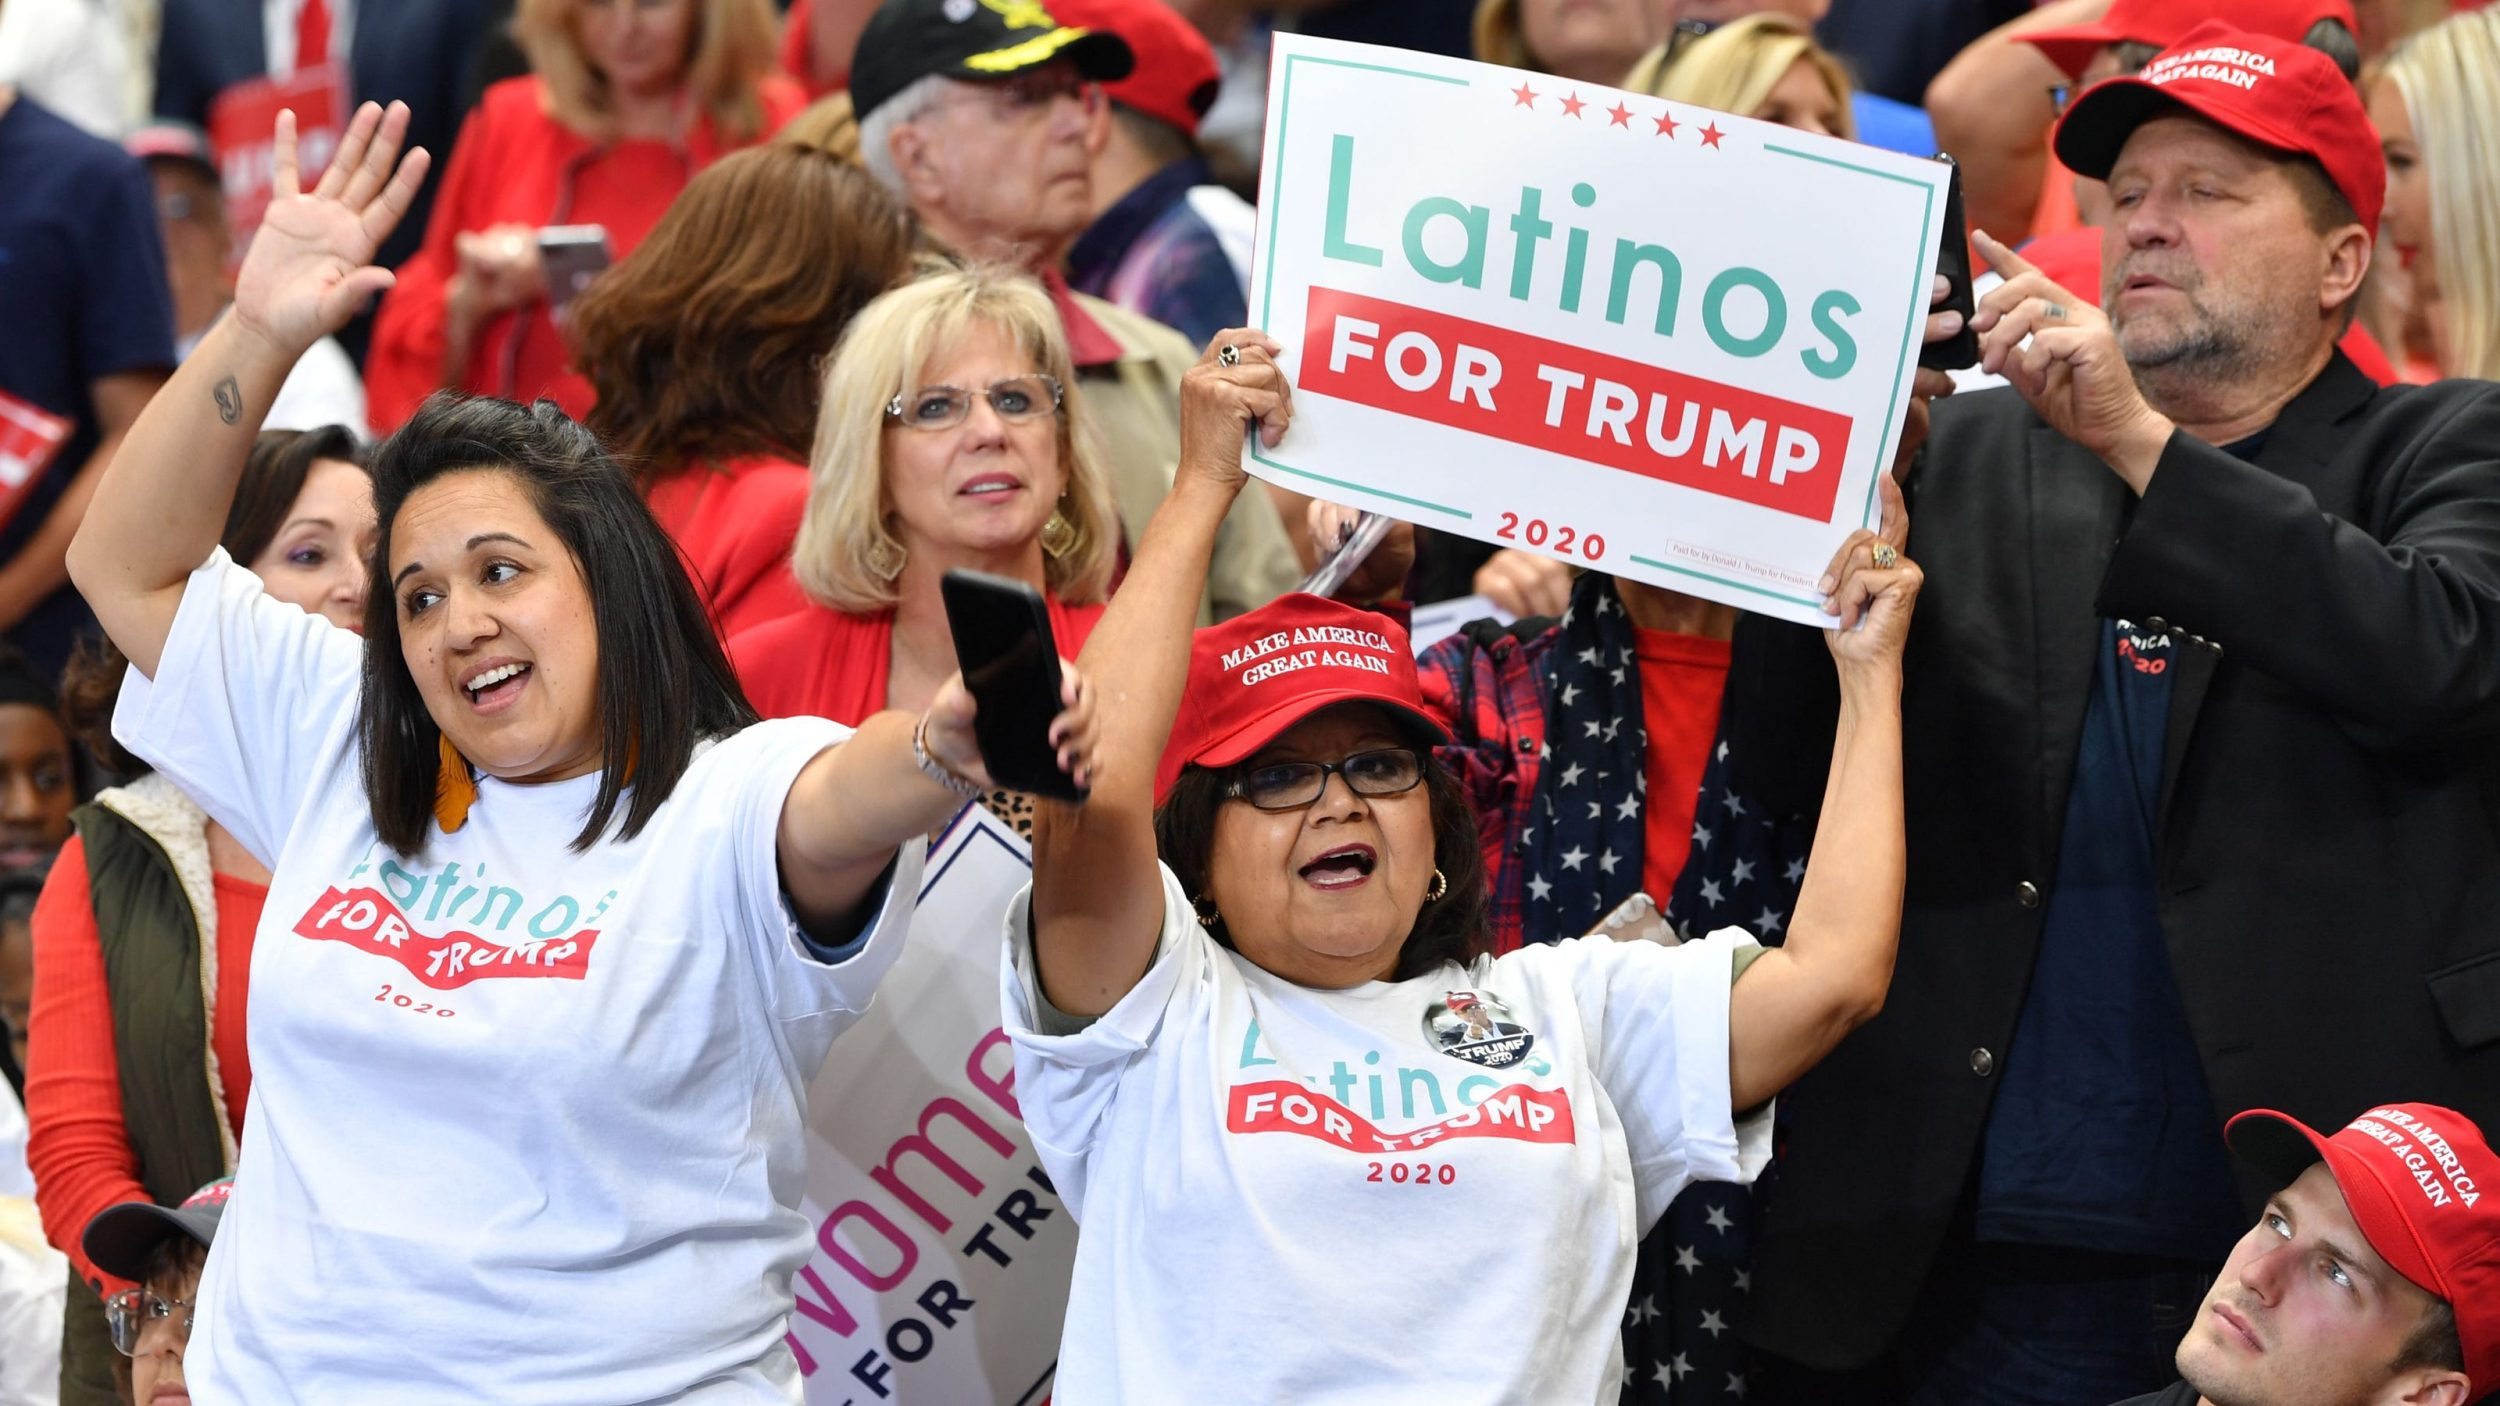 Republican Latinos For Trump?